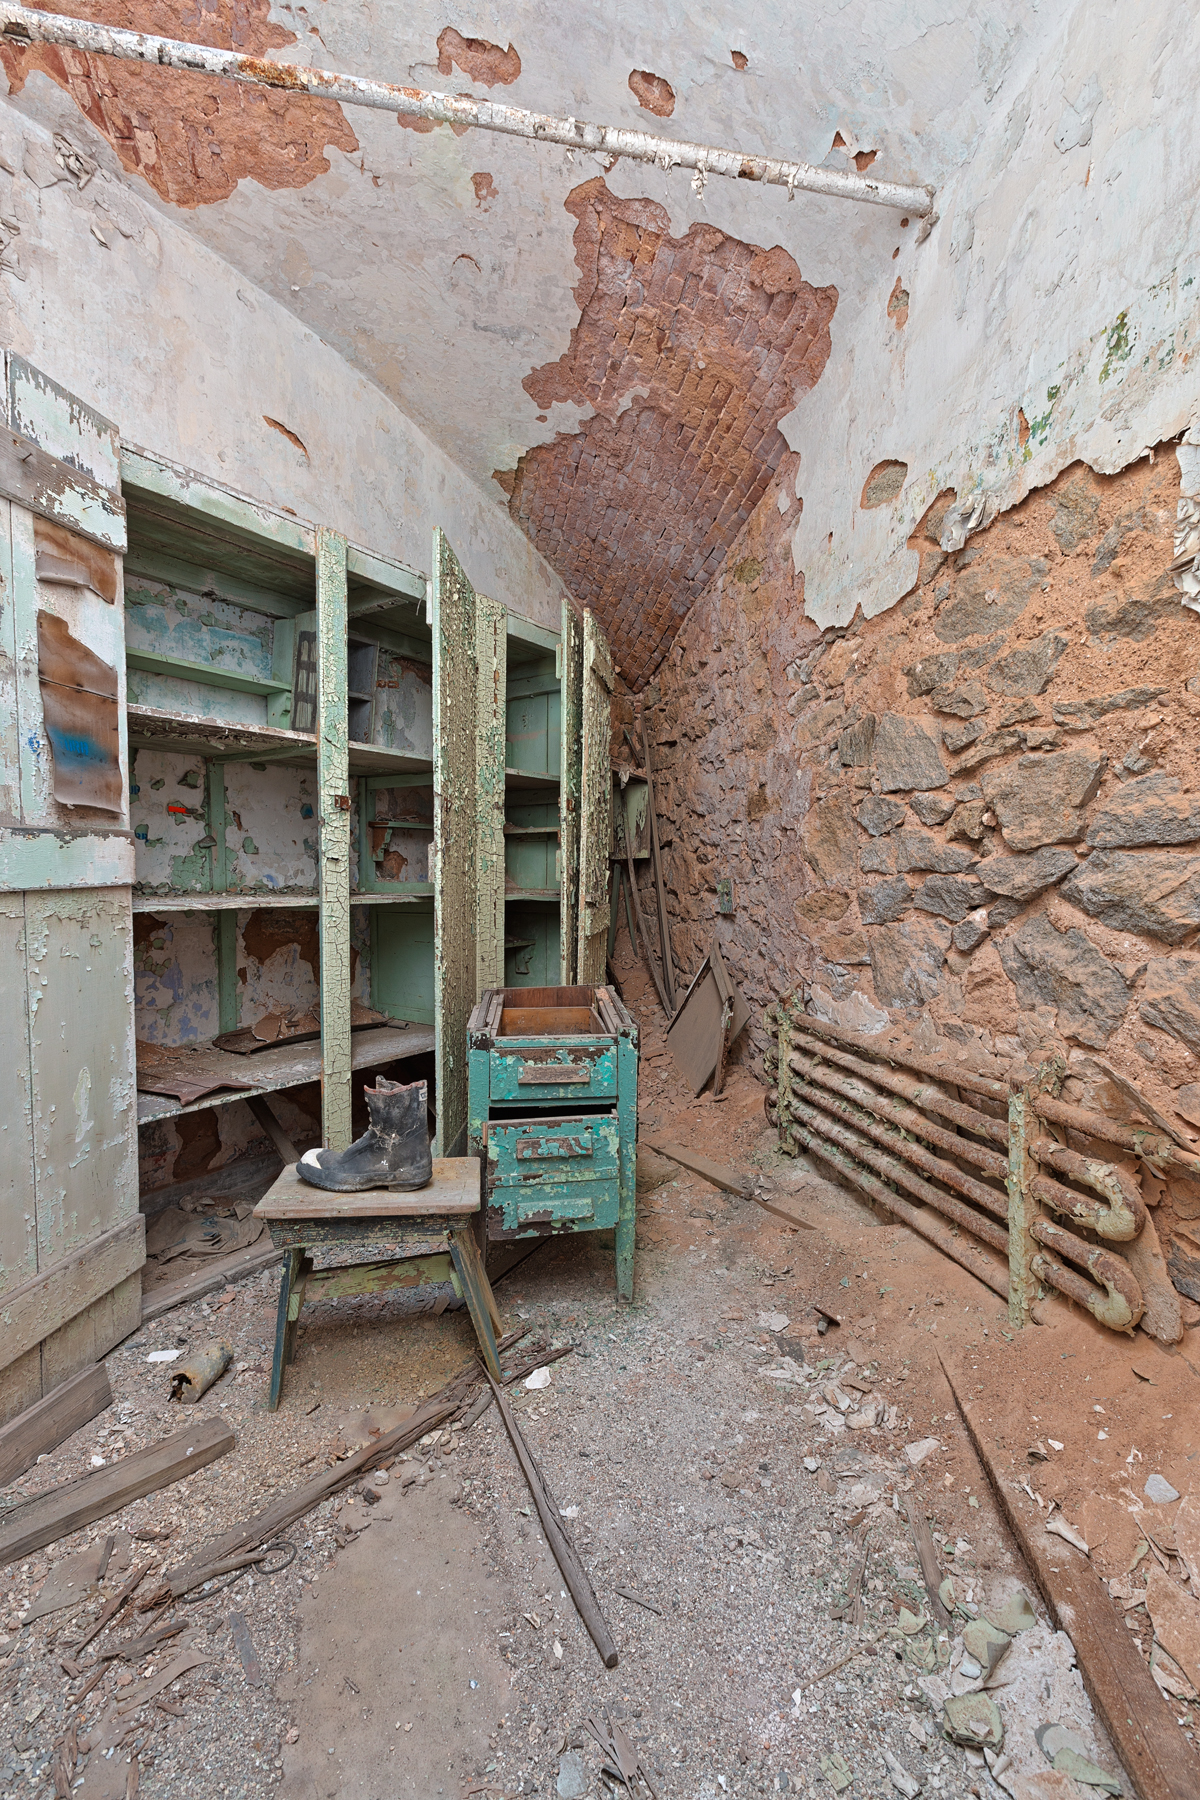 Prison Pantry Cell - HDR, Abandoned, Pennsylvania, Rusty, Rustic, HQ Photo